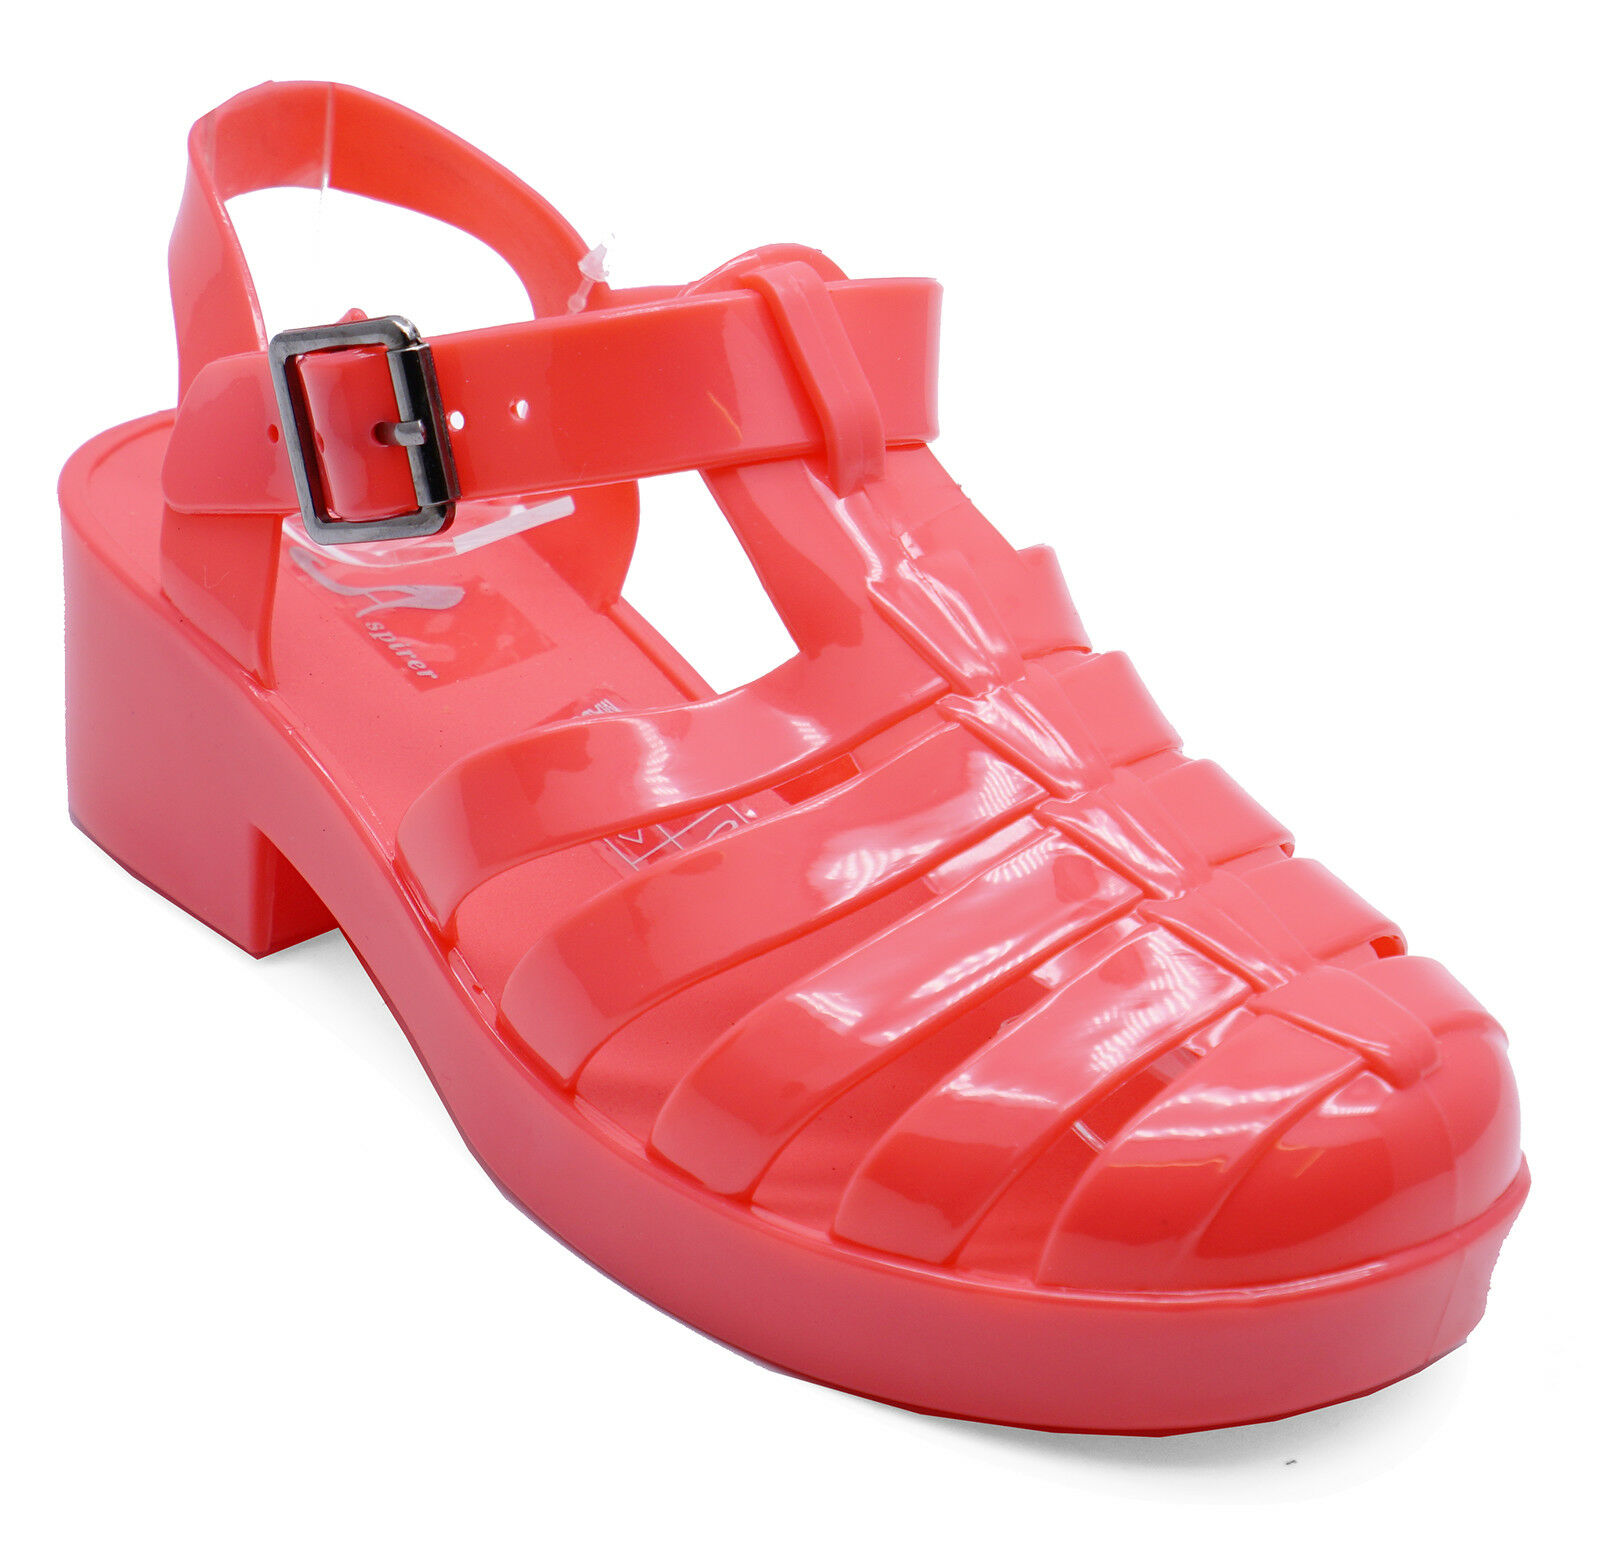 GIRLS JUNIOR WHITE LOW-HEEL HOLIDAY SUMMER JELLY SANDALS SHOES SIZES 11-3